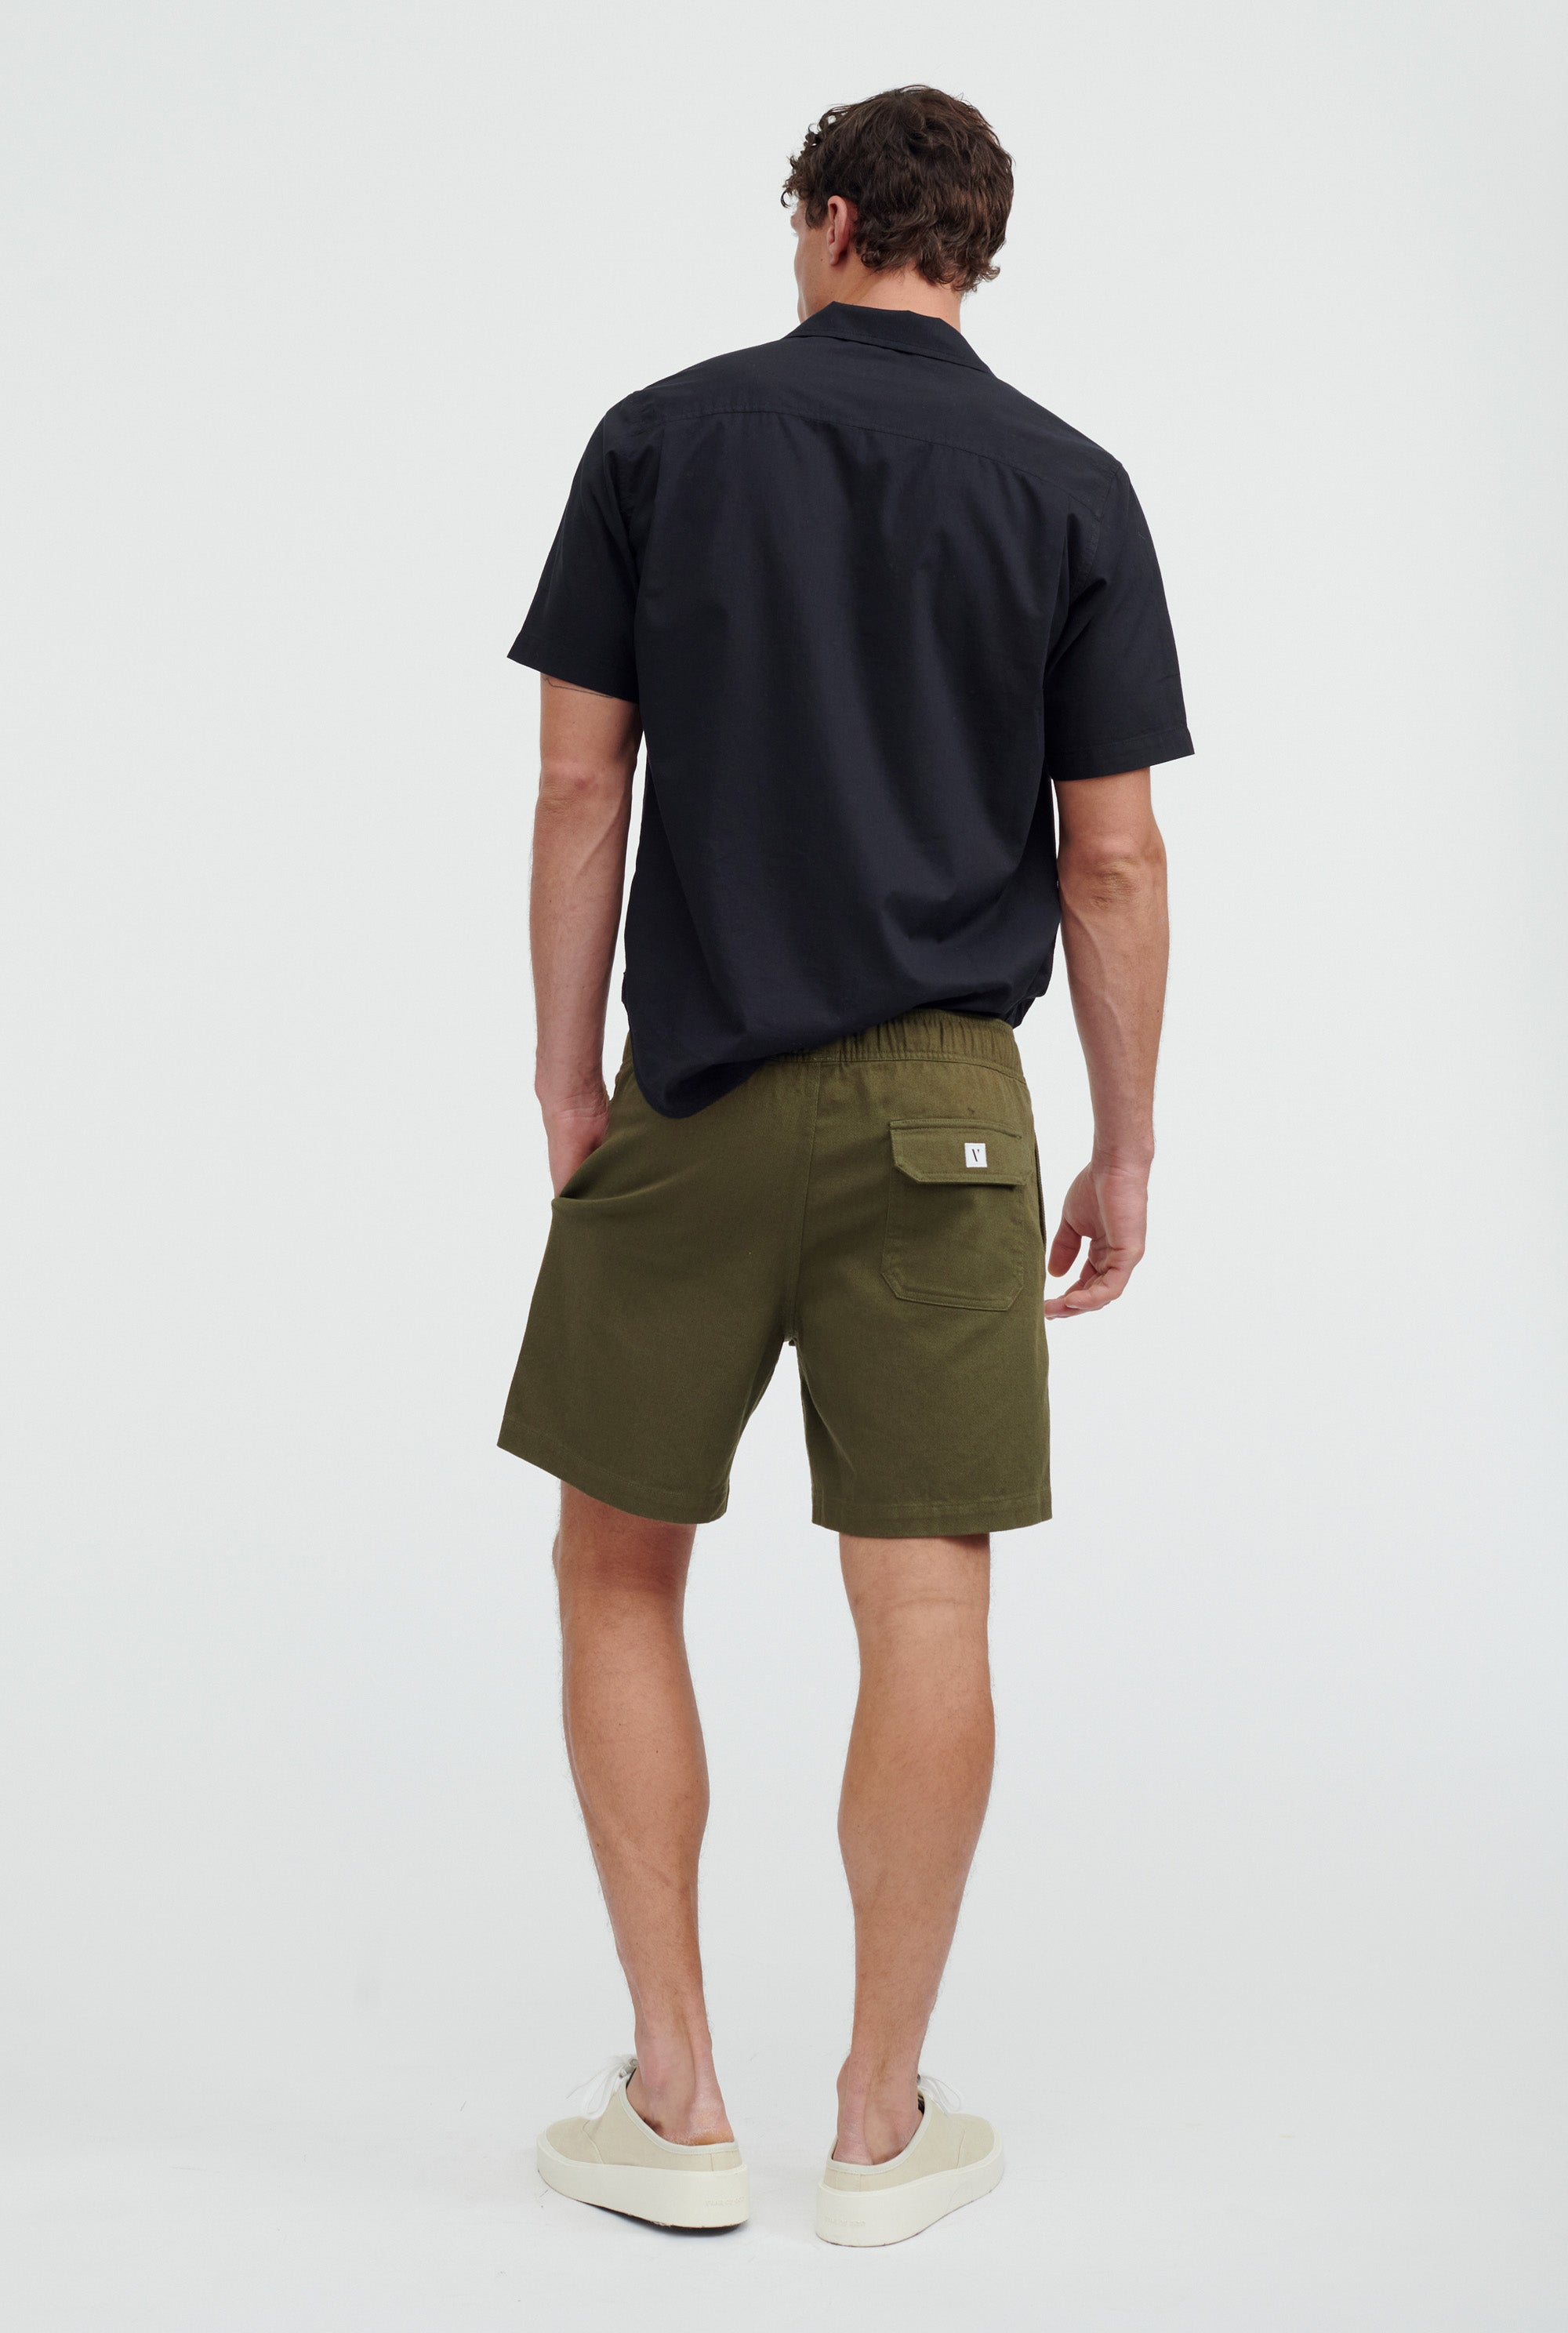 Cotton Drill Short - Signature Green